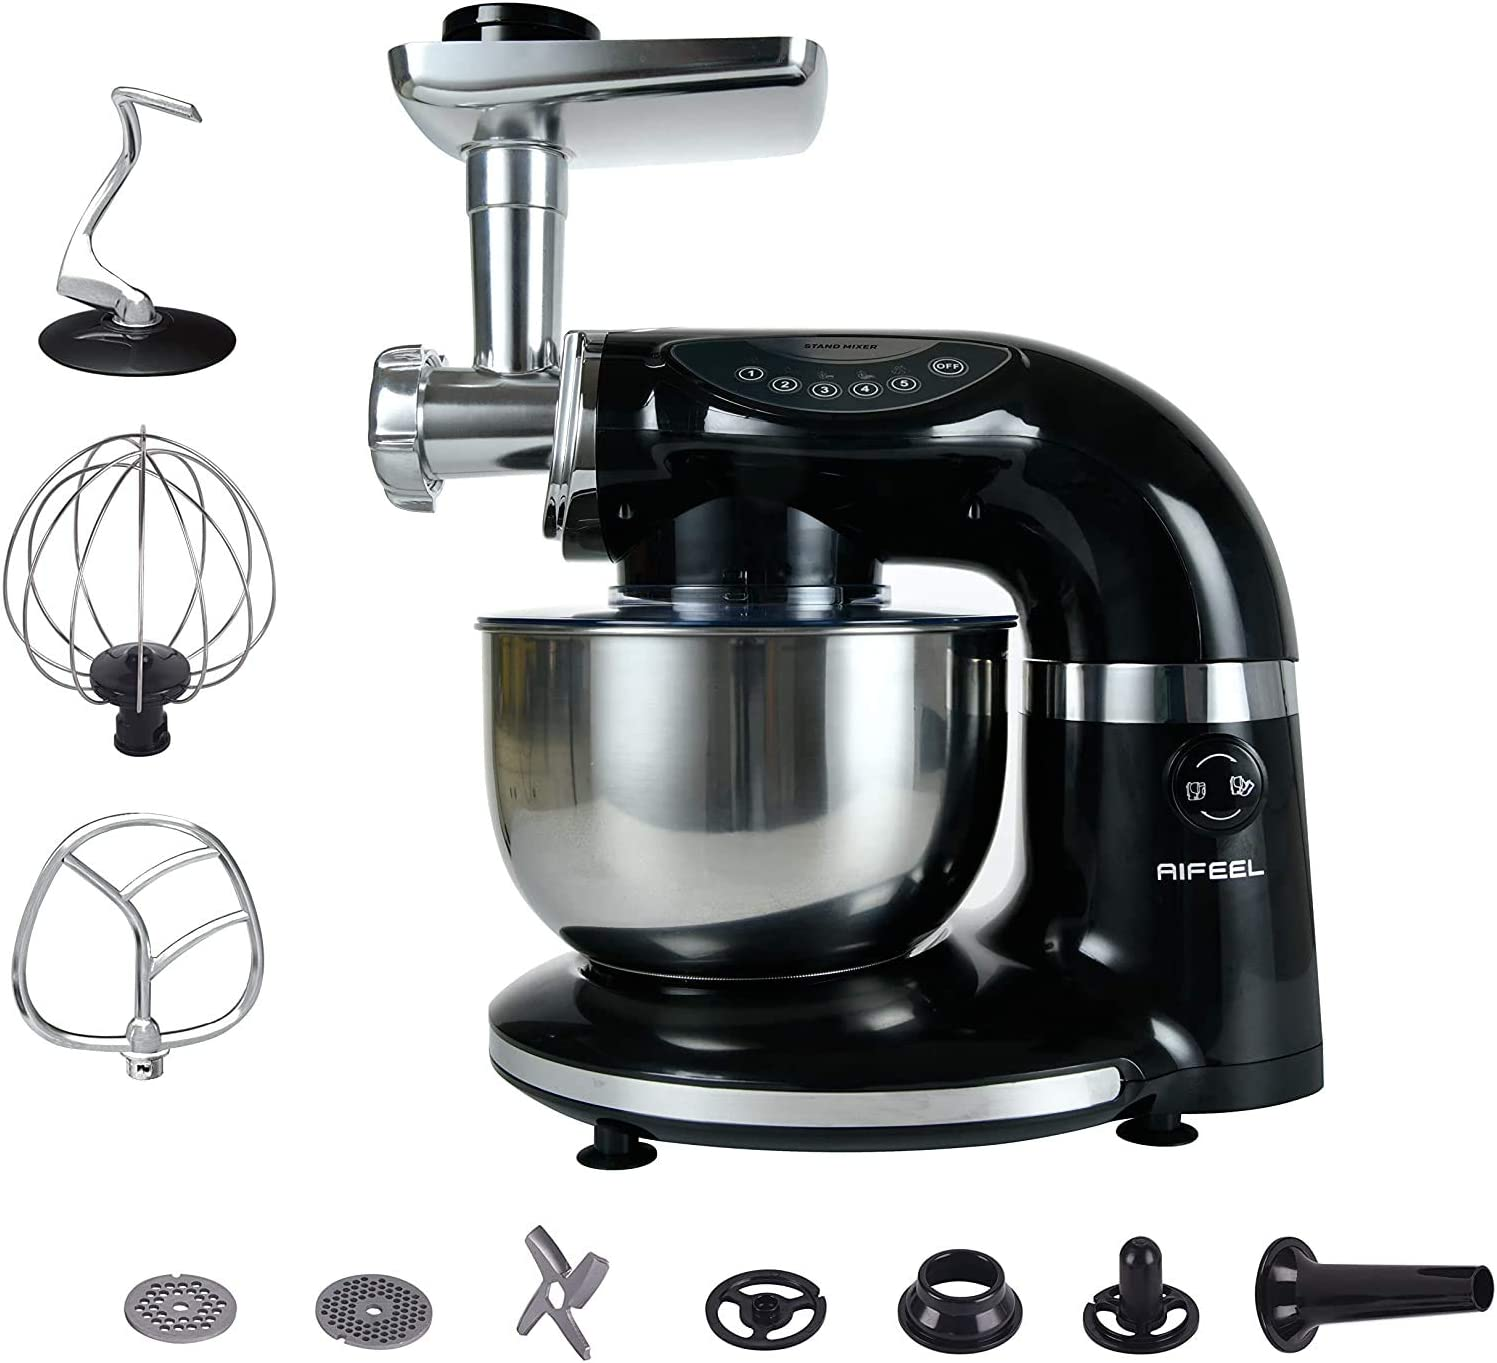 Aifeel Stand Mixer - 1000W 7 in 1 Multi Functional Kitchen Machine with 4L Food Grade Bowl, Food Grinder, Full Set Maker Accessories - 5 Speed Settings and LED Display